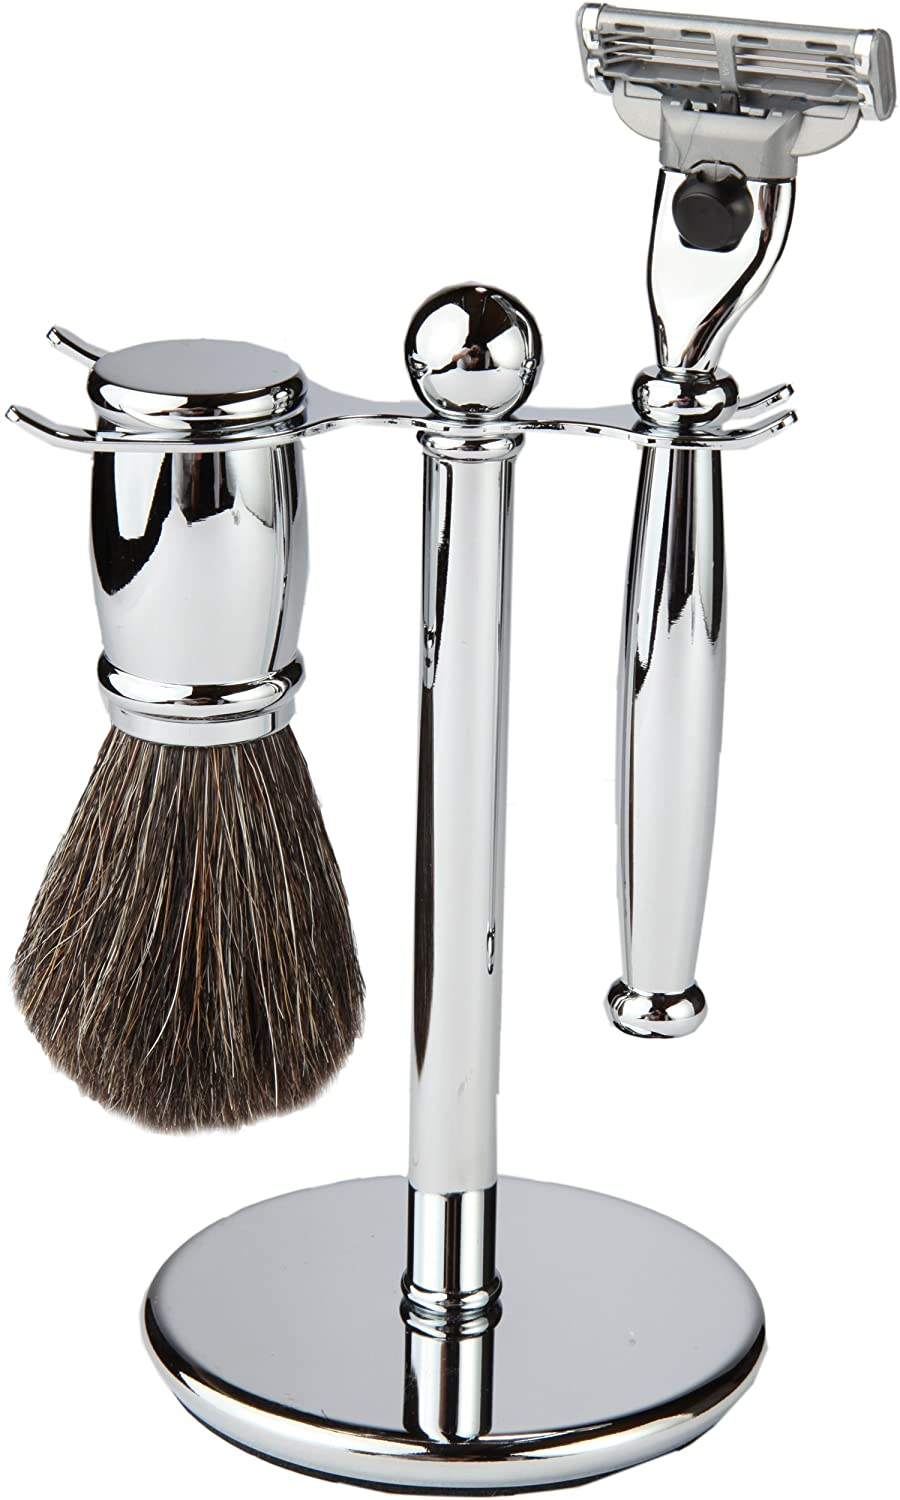 3 Piece Shaving Set With Mach 3 Heavyweight Handle, 100% Heavyweight Badger Brush, With All metal Chrome Classy Stand (Matching Chrome) Boss Razors